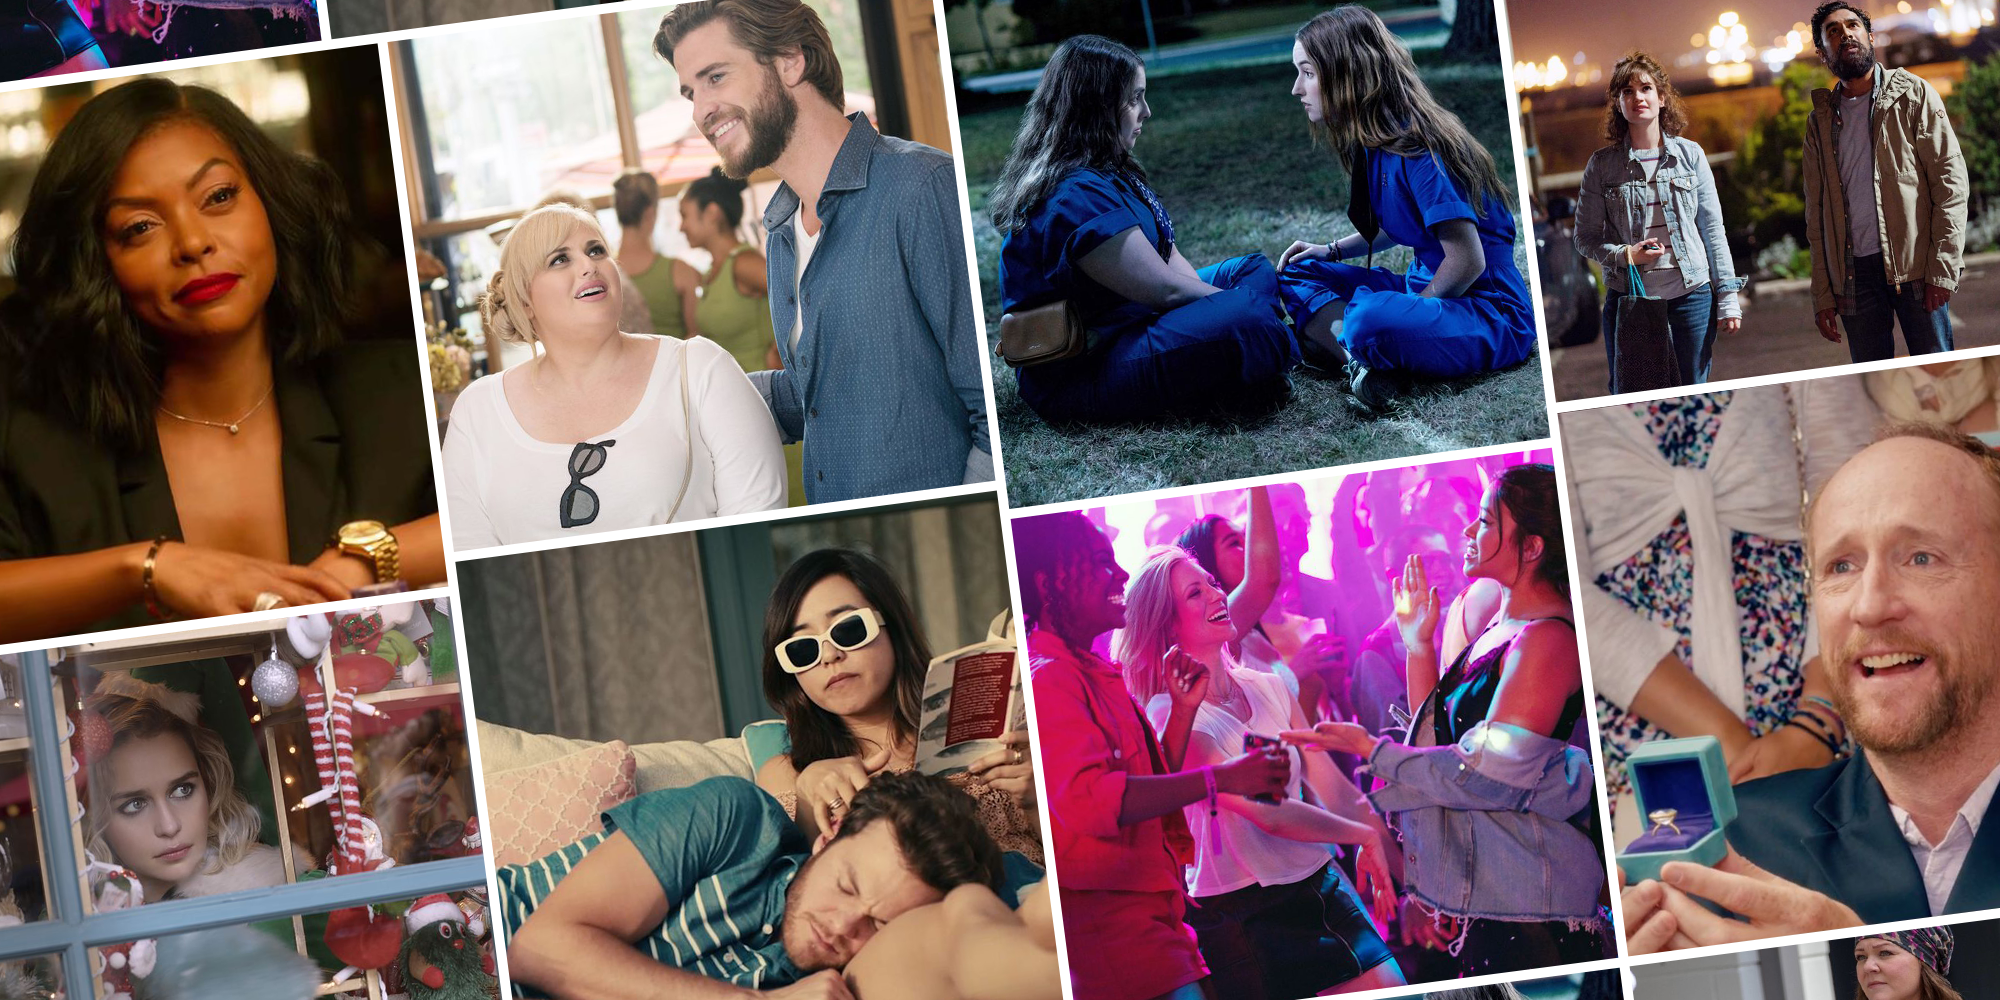 10 Most Romantic Comedies of 2019 - Best Rom Coms of the Year